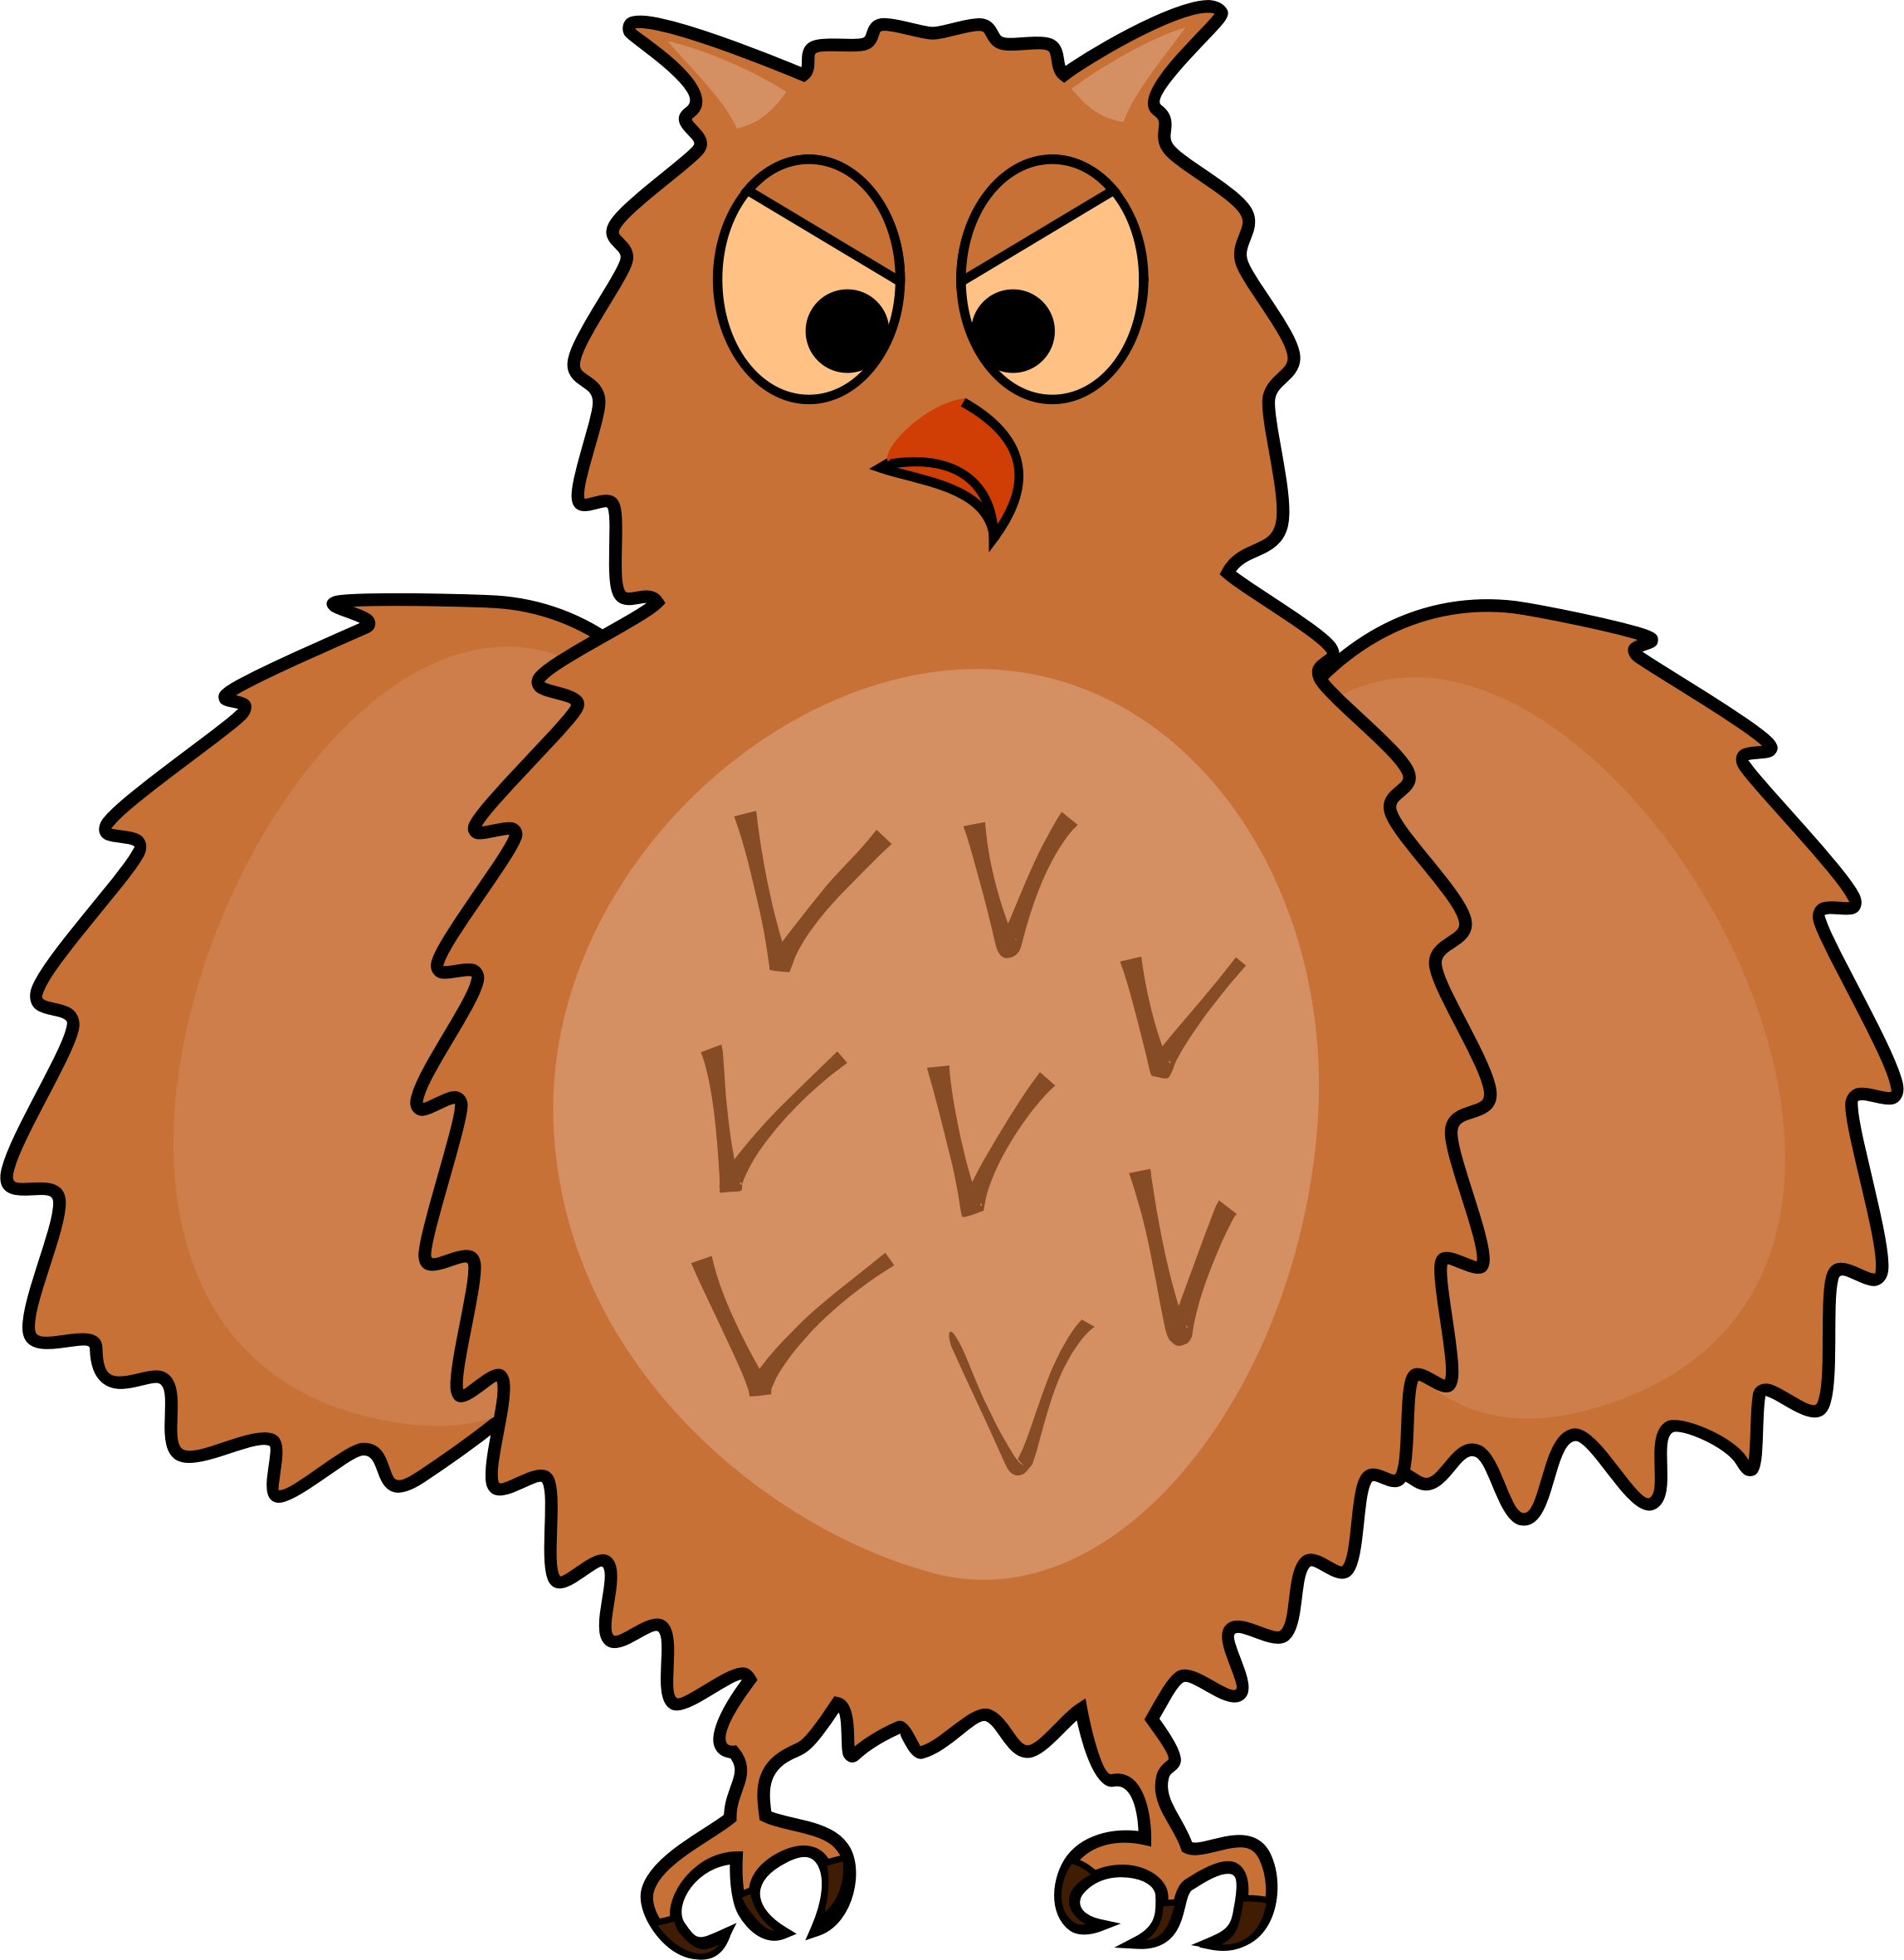 Spread clipart. Enraged owl front view